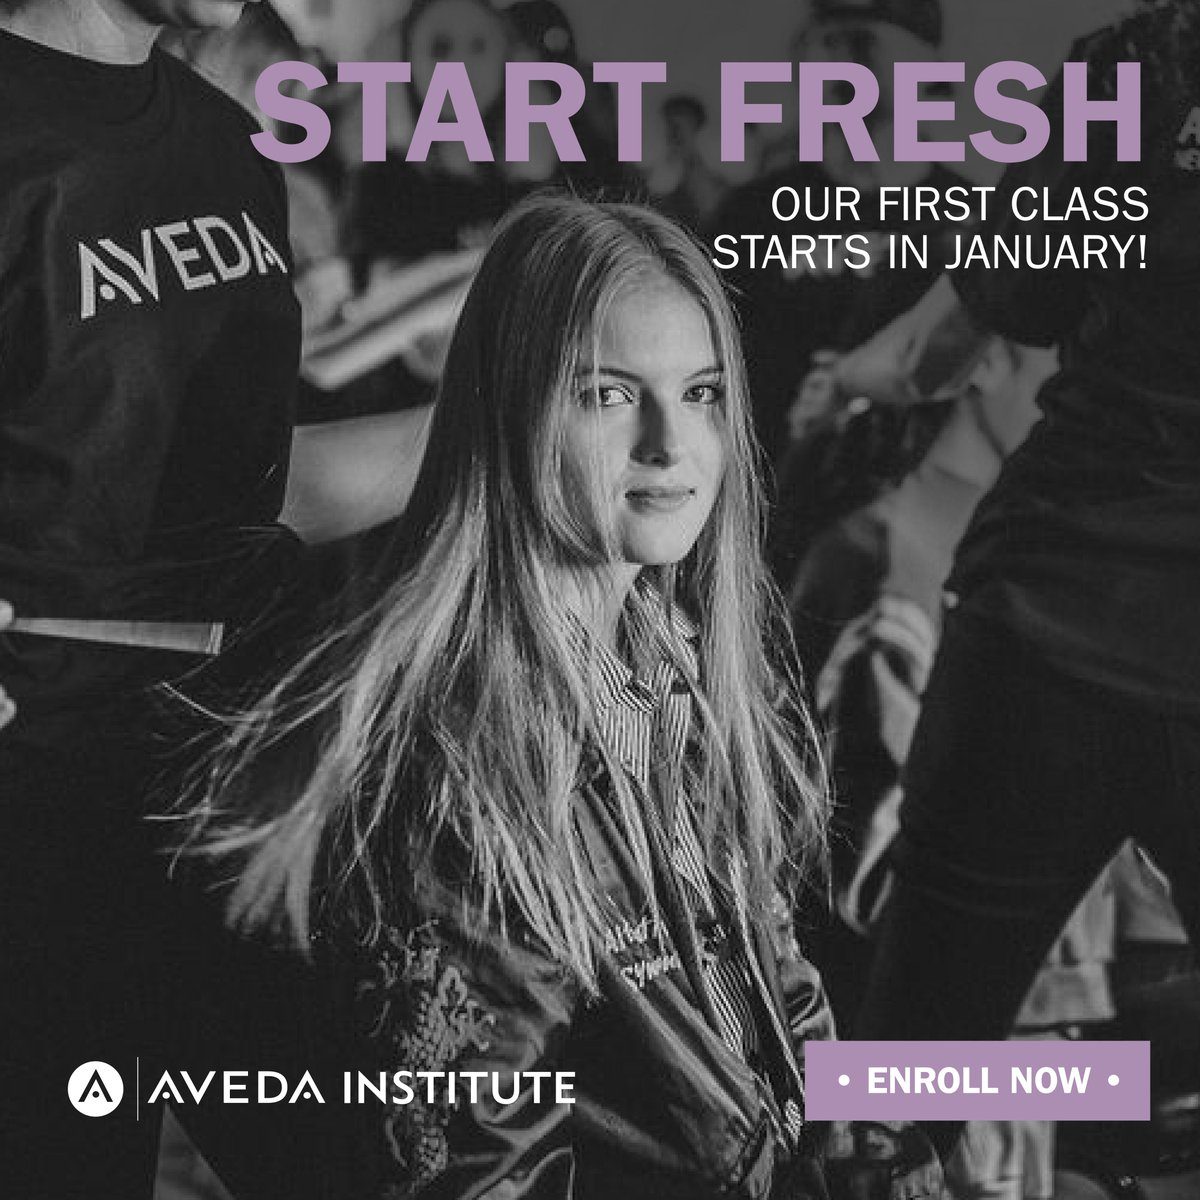 Aveda Institute On Twitter Learn How Avedainstitute Can Help You